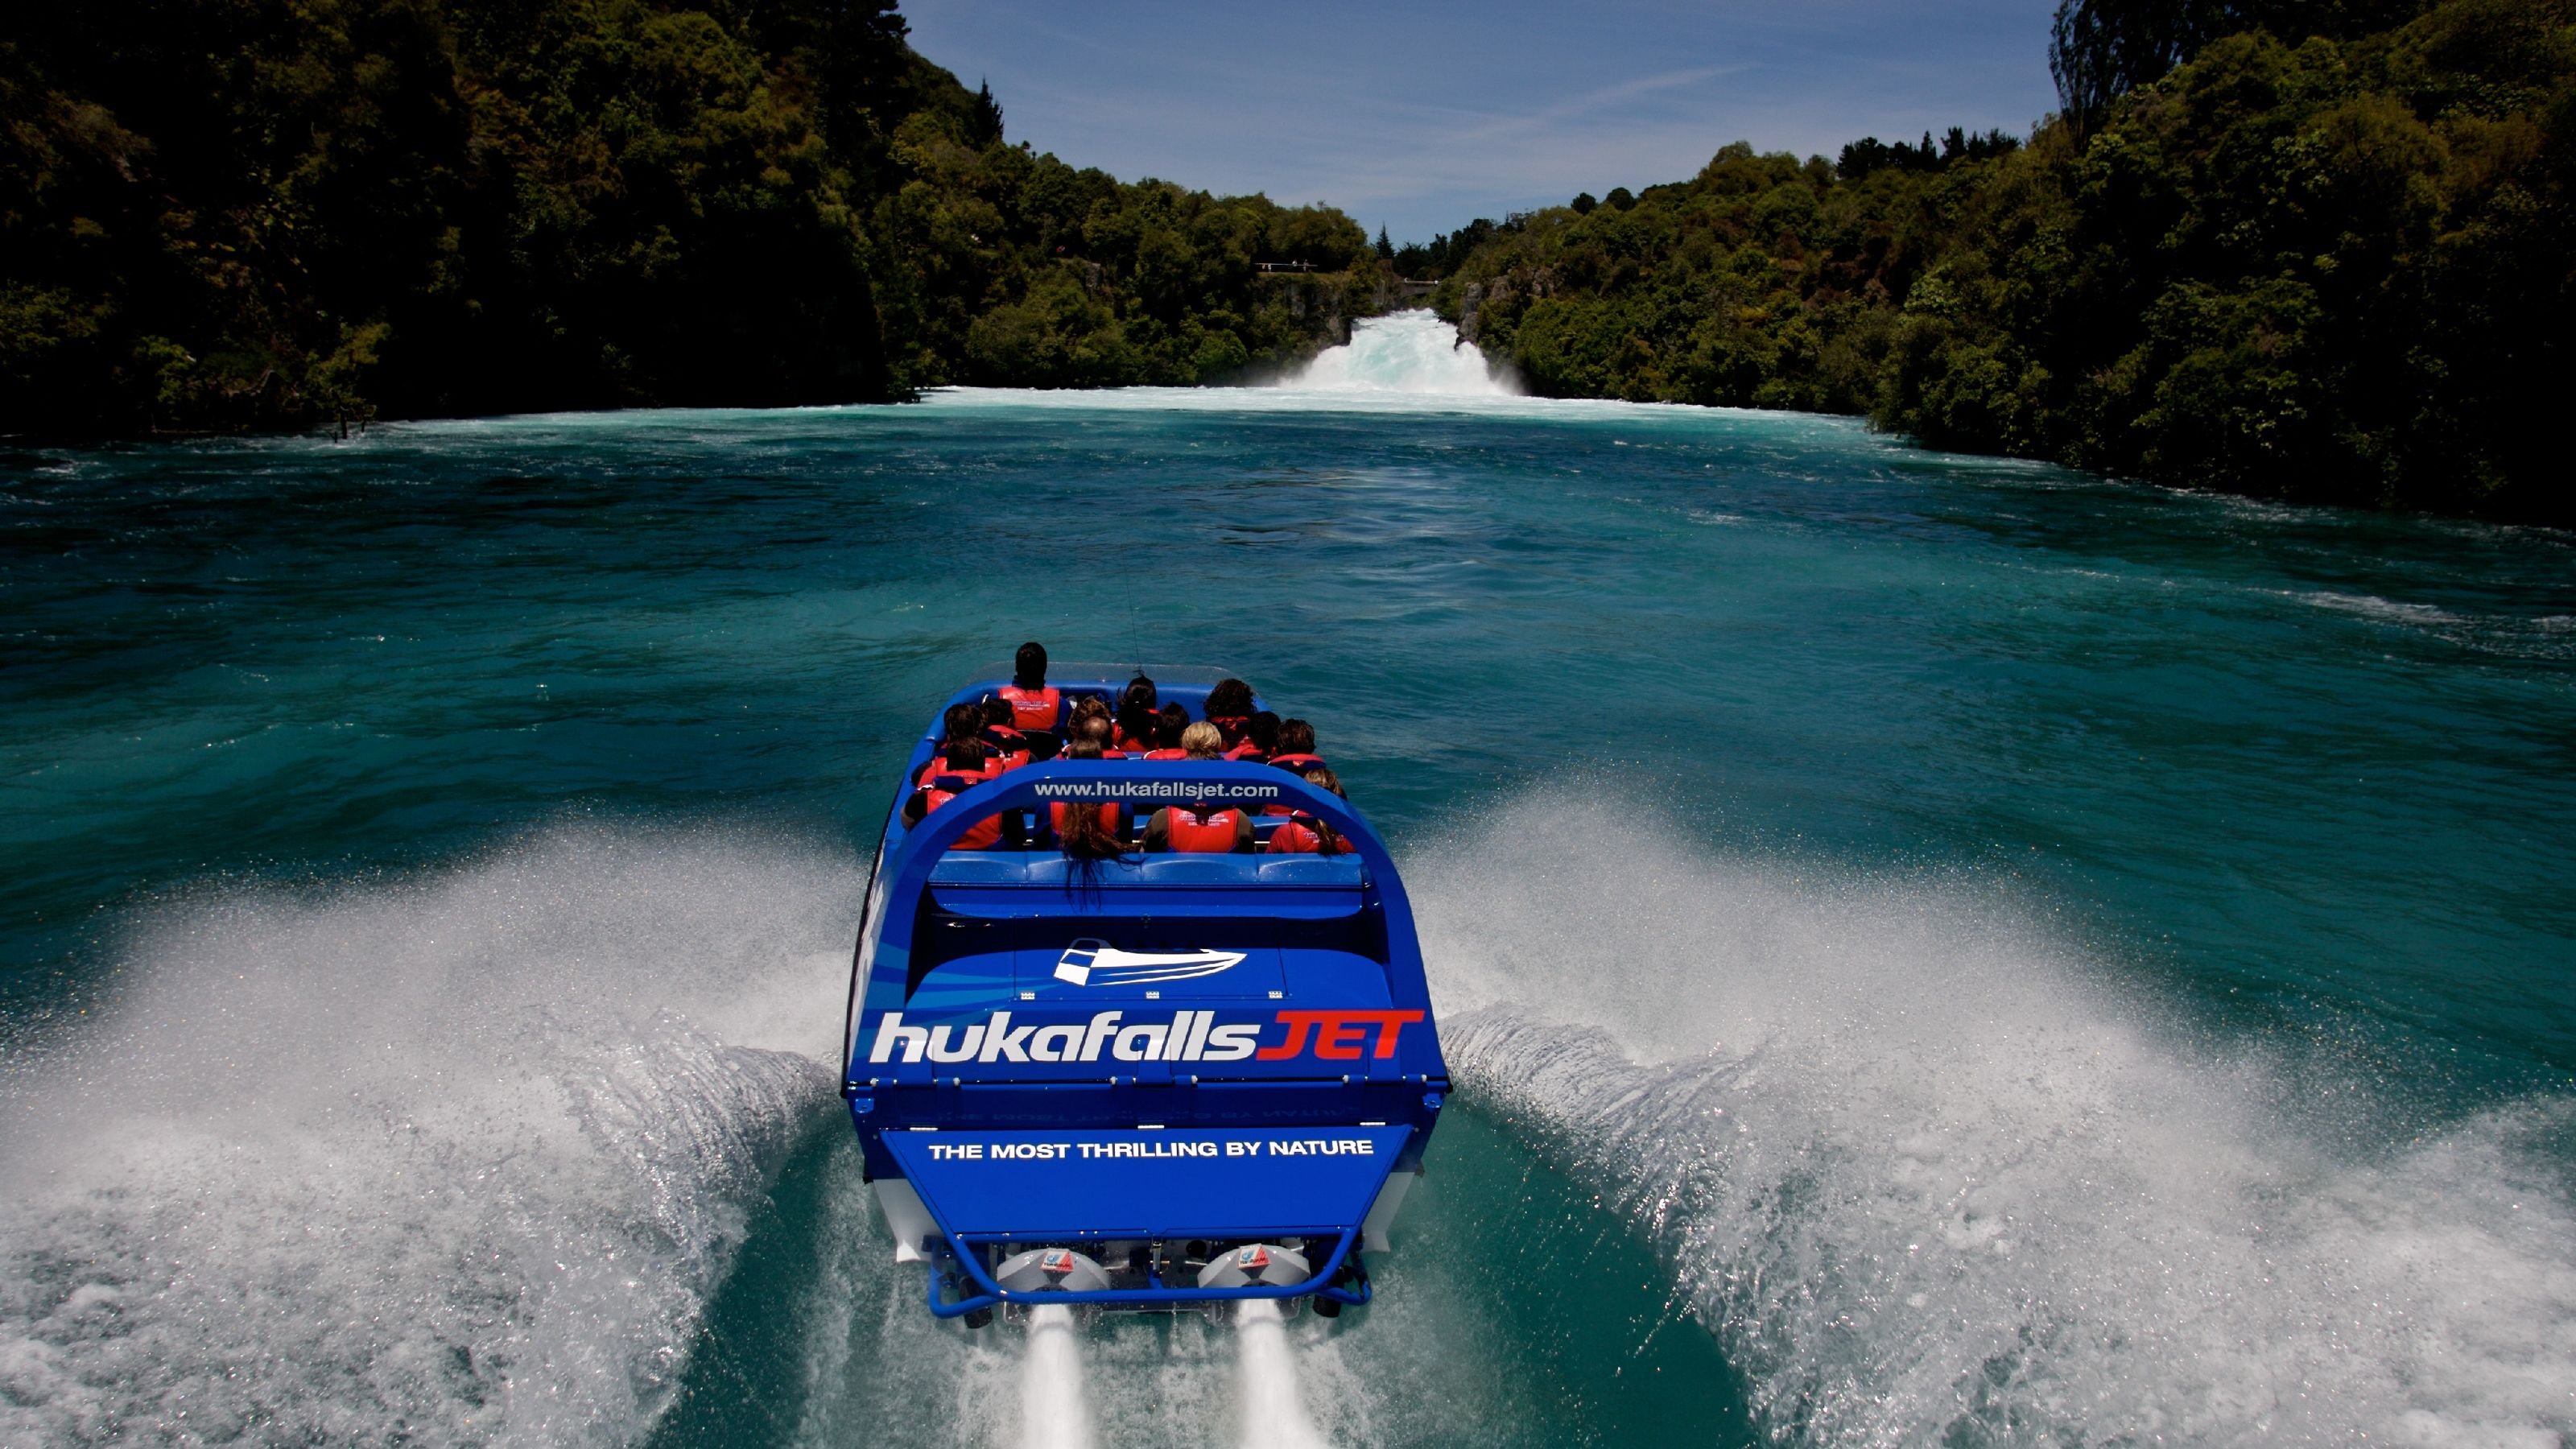 passengers riding in a jet boat in Taupo